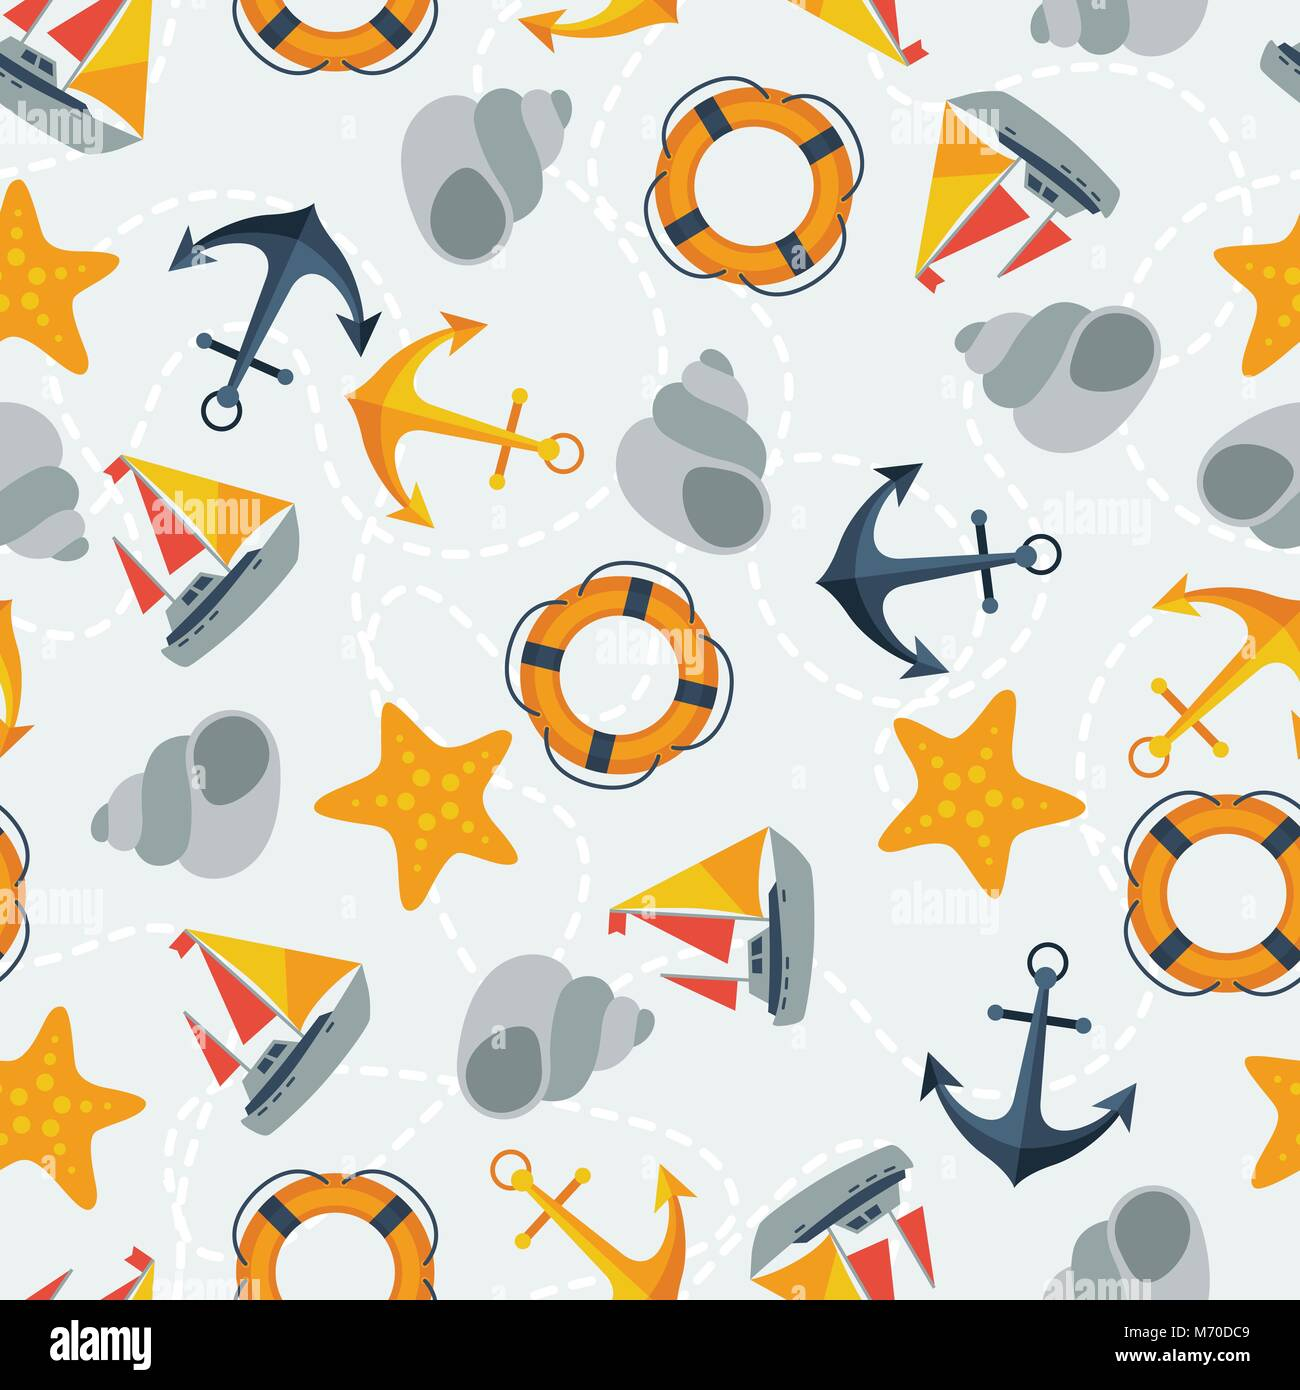 Nautical seamless pattern in flat design style - Stock Vector